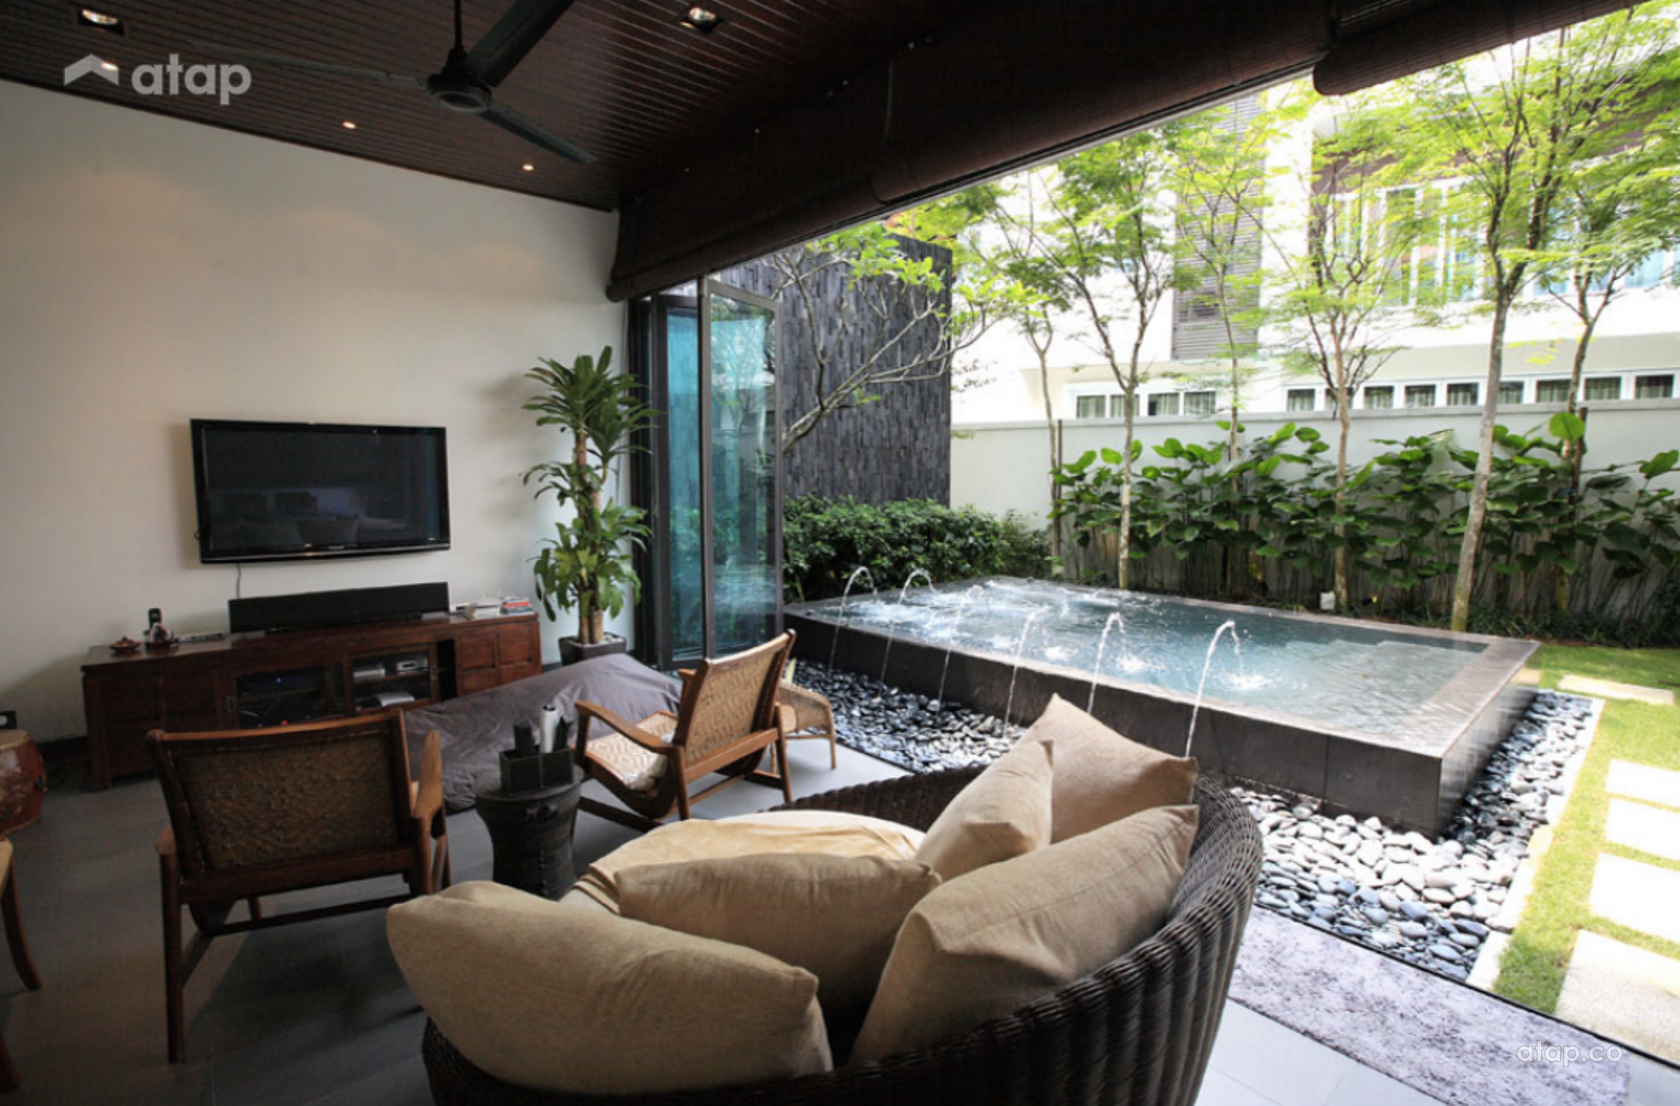 Small dipping pool with water features at a bungalow in Mutiara Damansara.